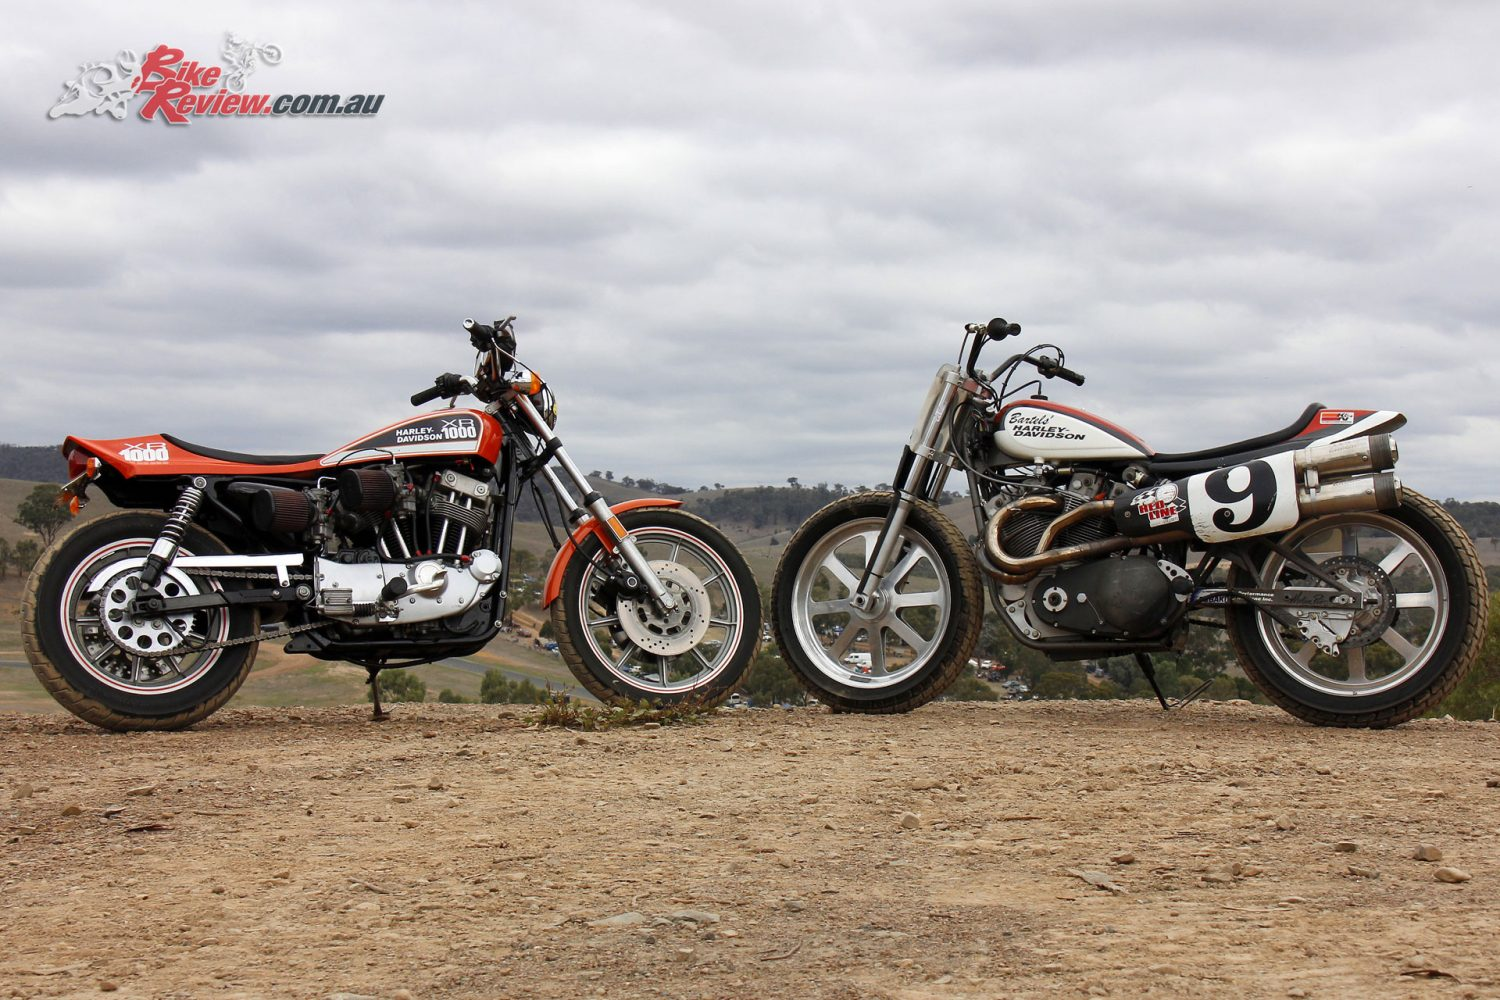 Harley-Davidson XR 750 Flat Tracker and XR 1000